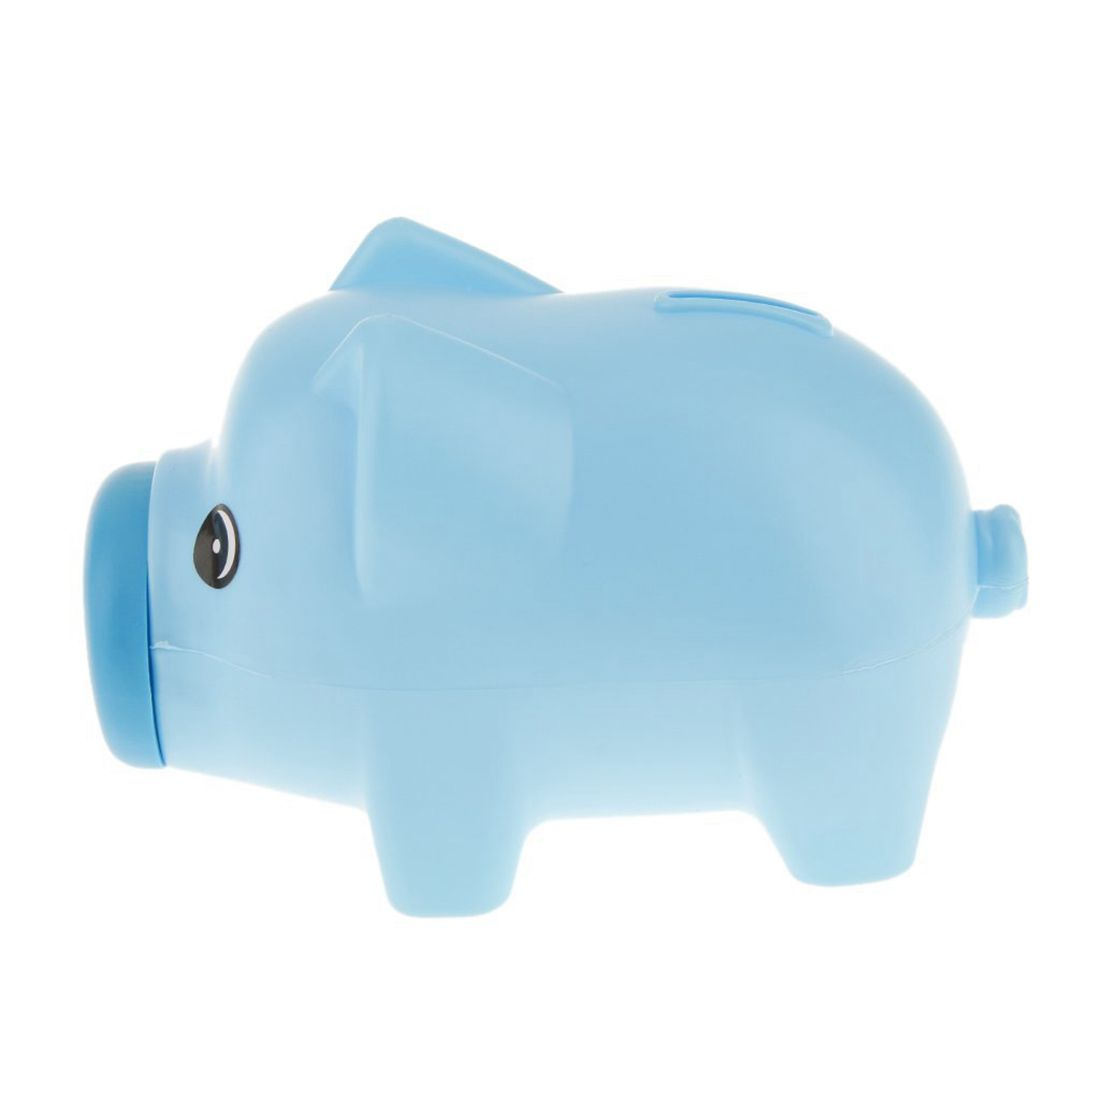 Plastic Blue Piggy Bank Animal Piggy Bank Treasury Saving Coin Coins Money Kids Children Gift